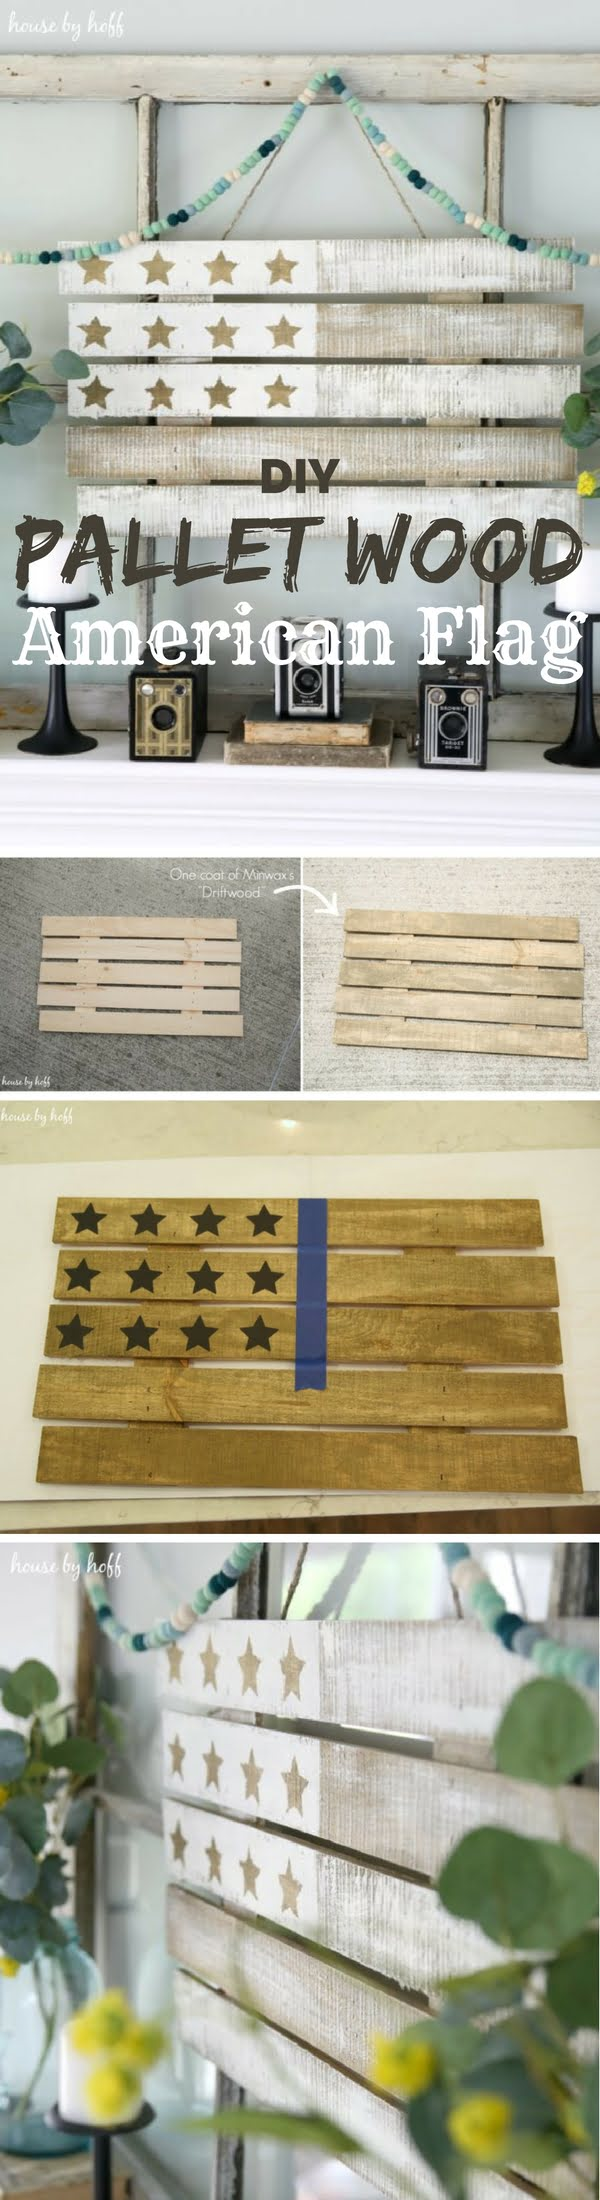 Check out how to make an easy DIY Pallet Wood American Flag